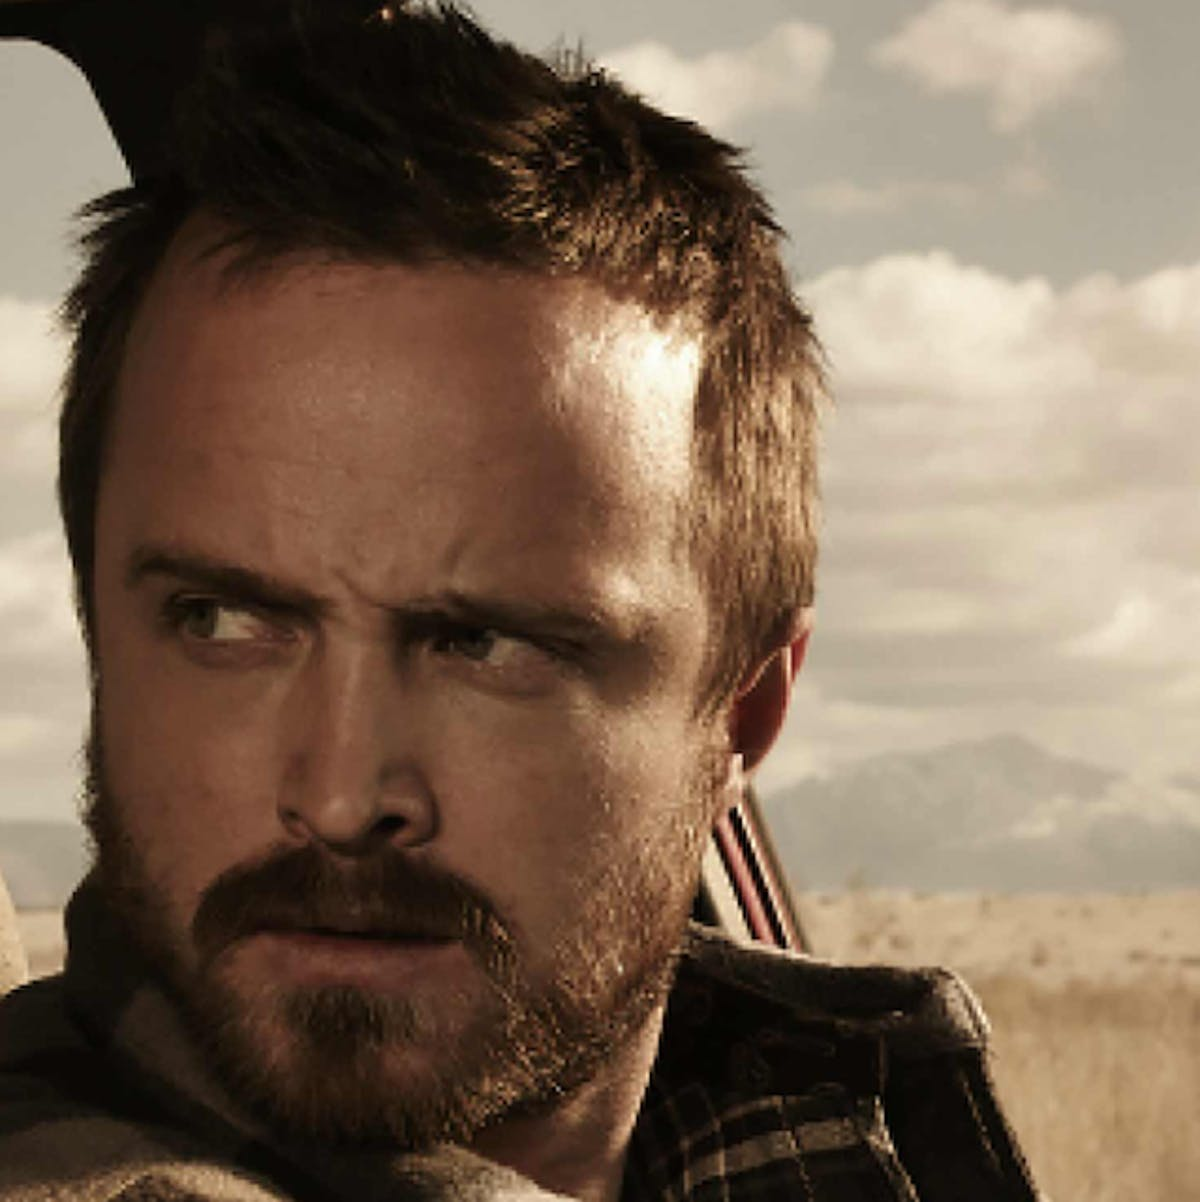 'El Camino' cast and characters: Every 'Breaking Bad' cameo, ranked